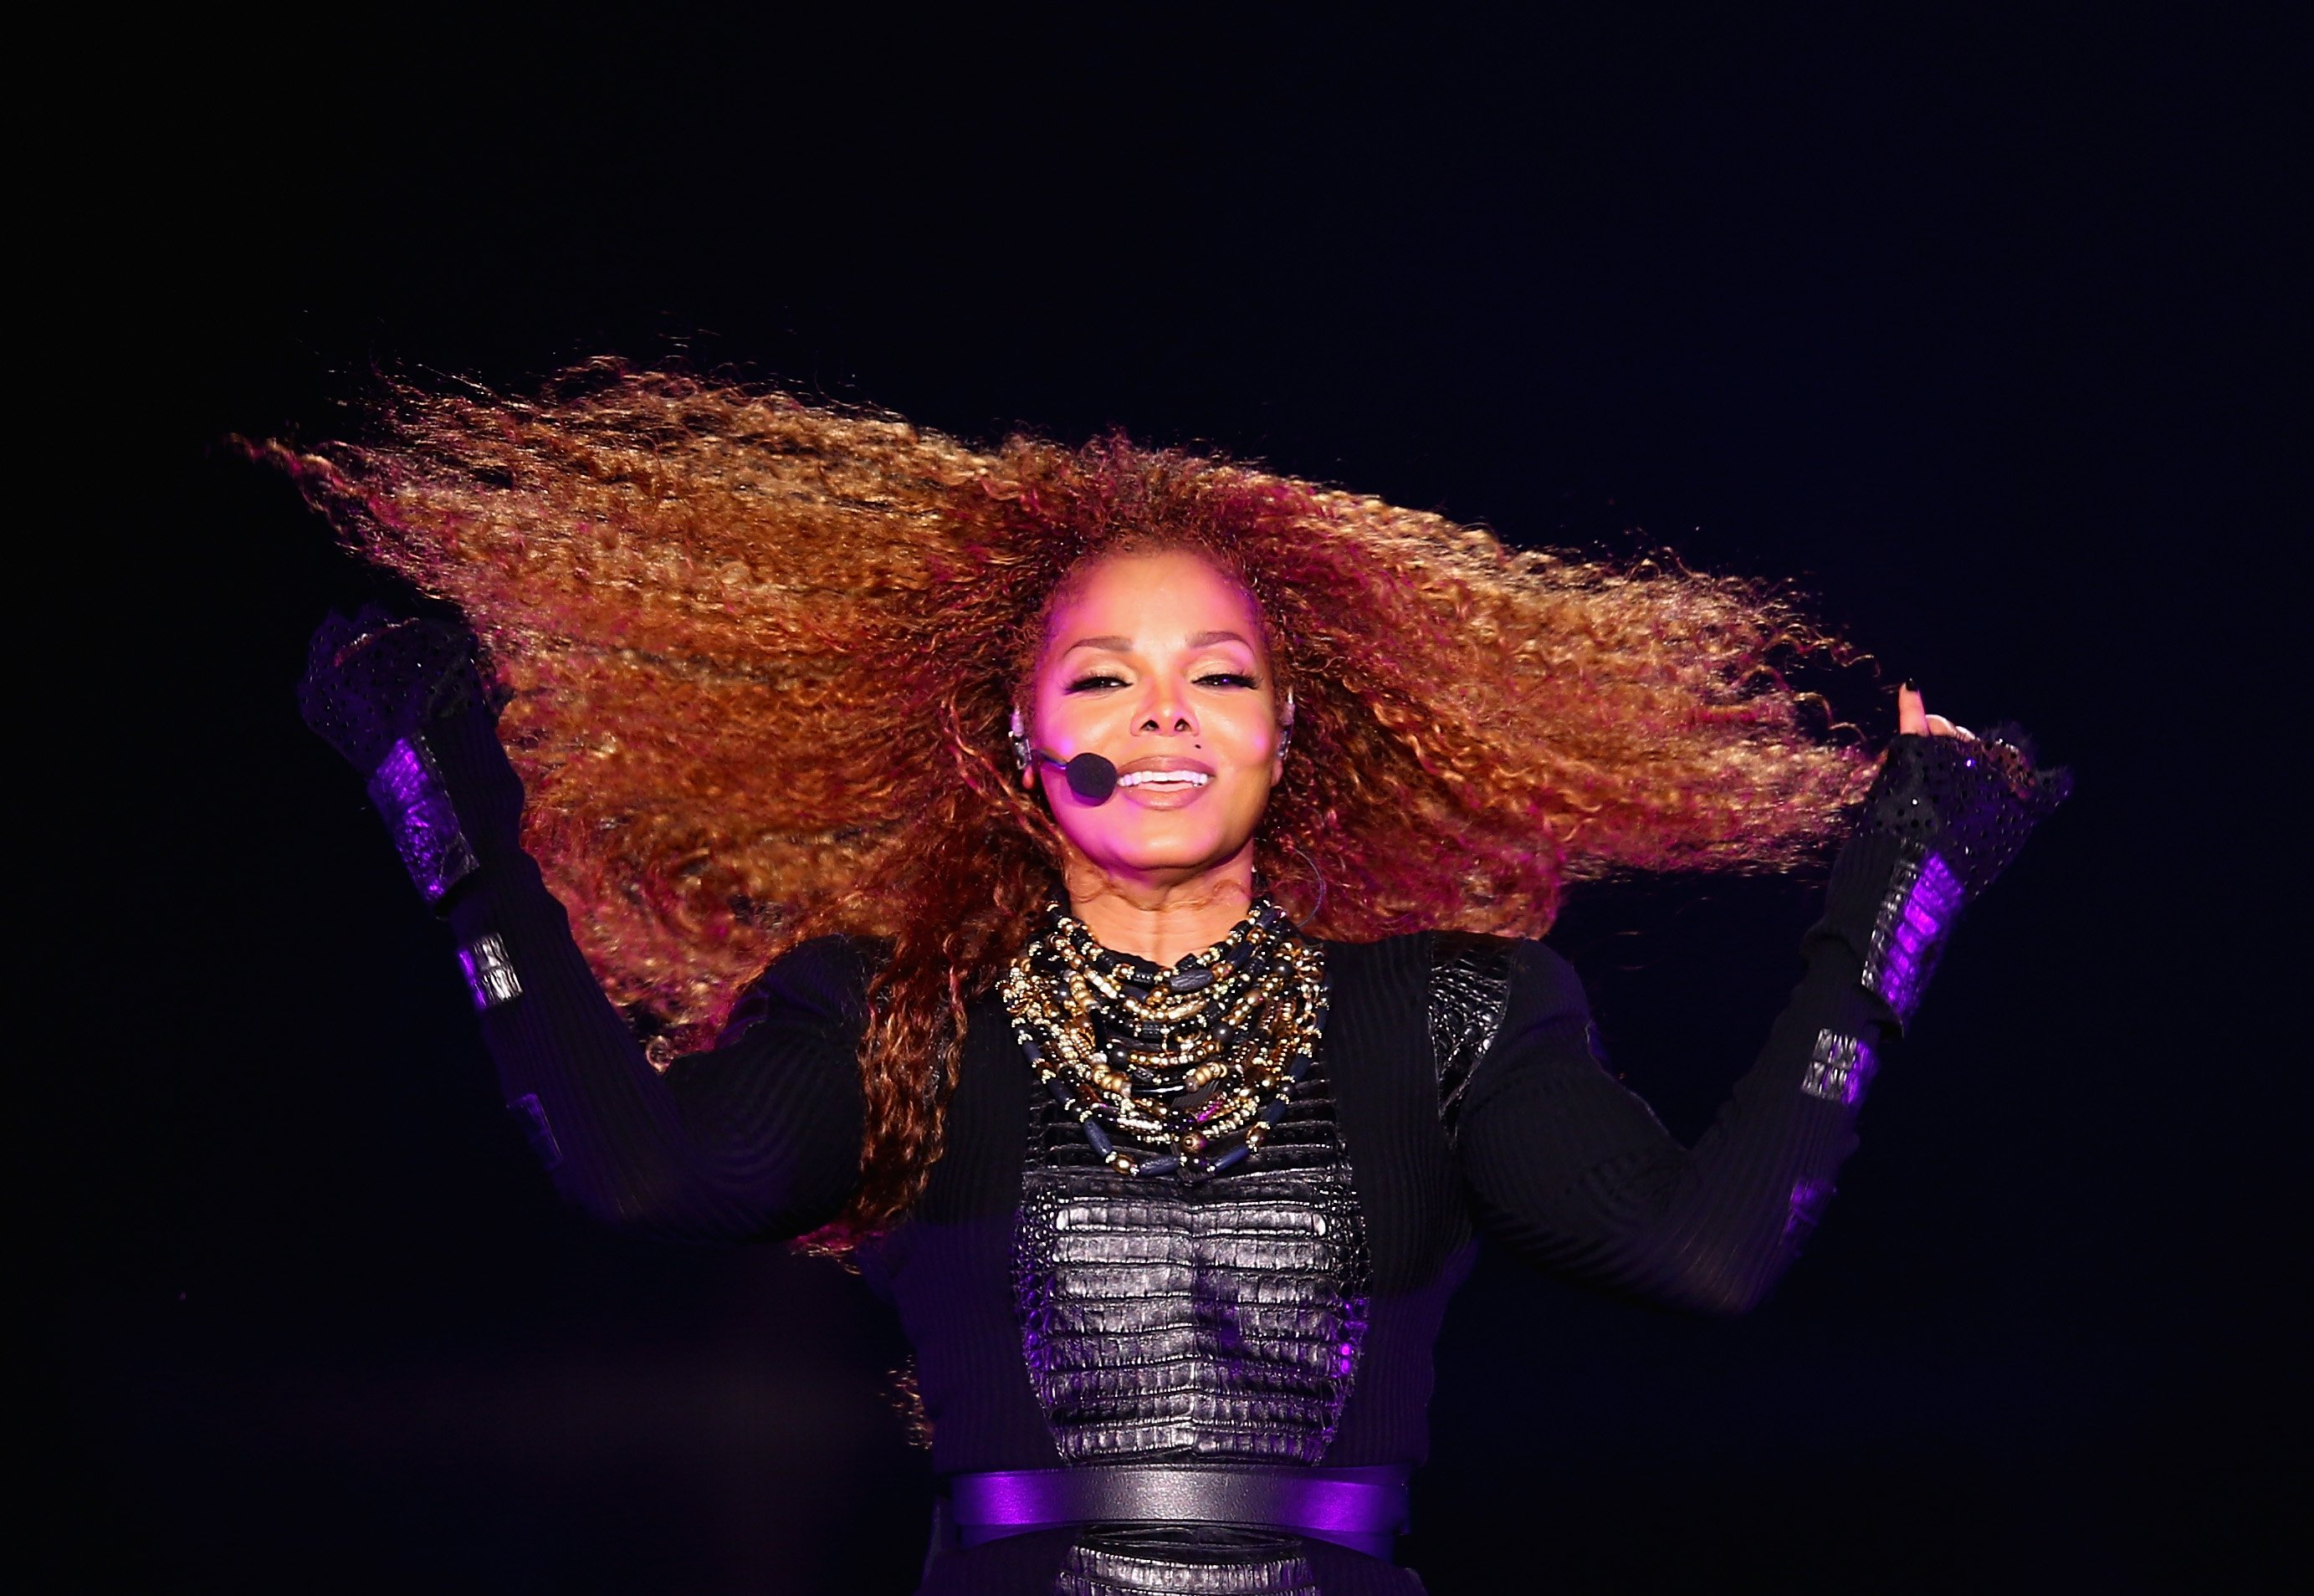 Janet Jackson performs after the Dubai World Cup at the Meydan Racecourse on March 26, 2016 | Photo: Getty Images